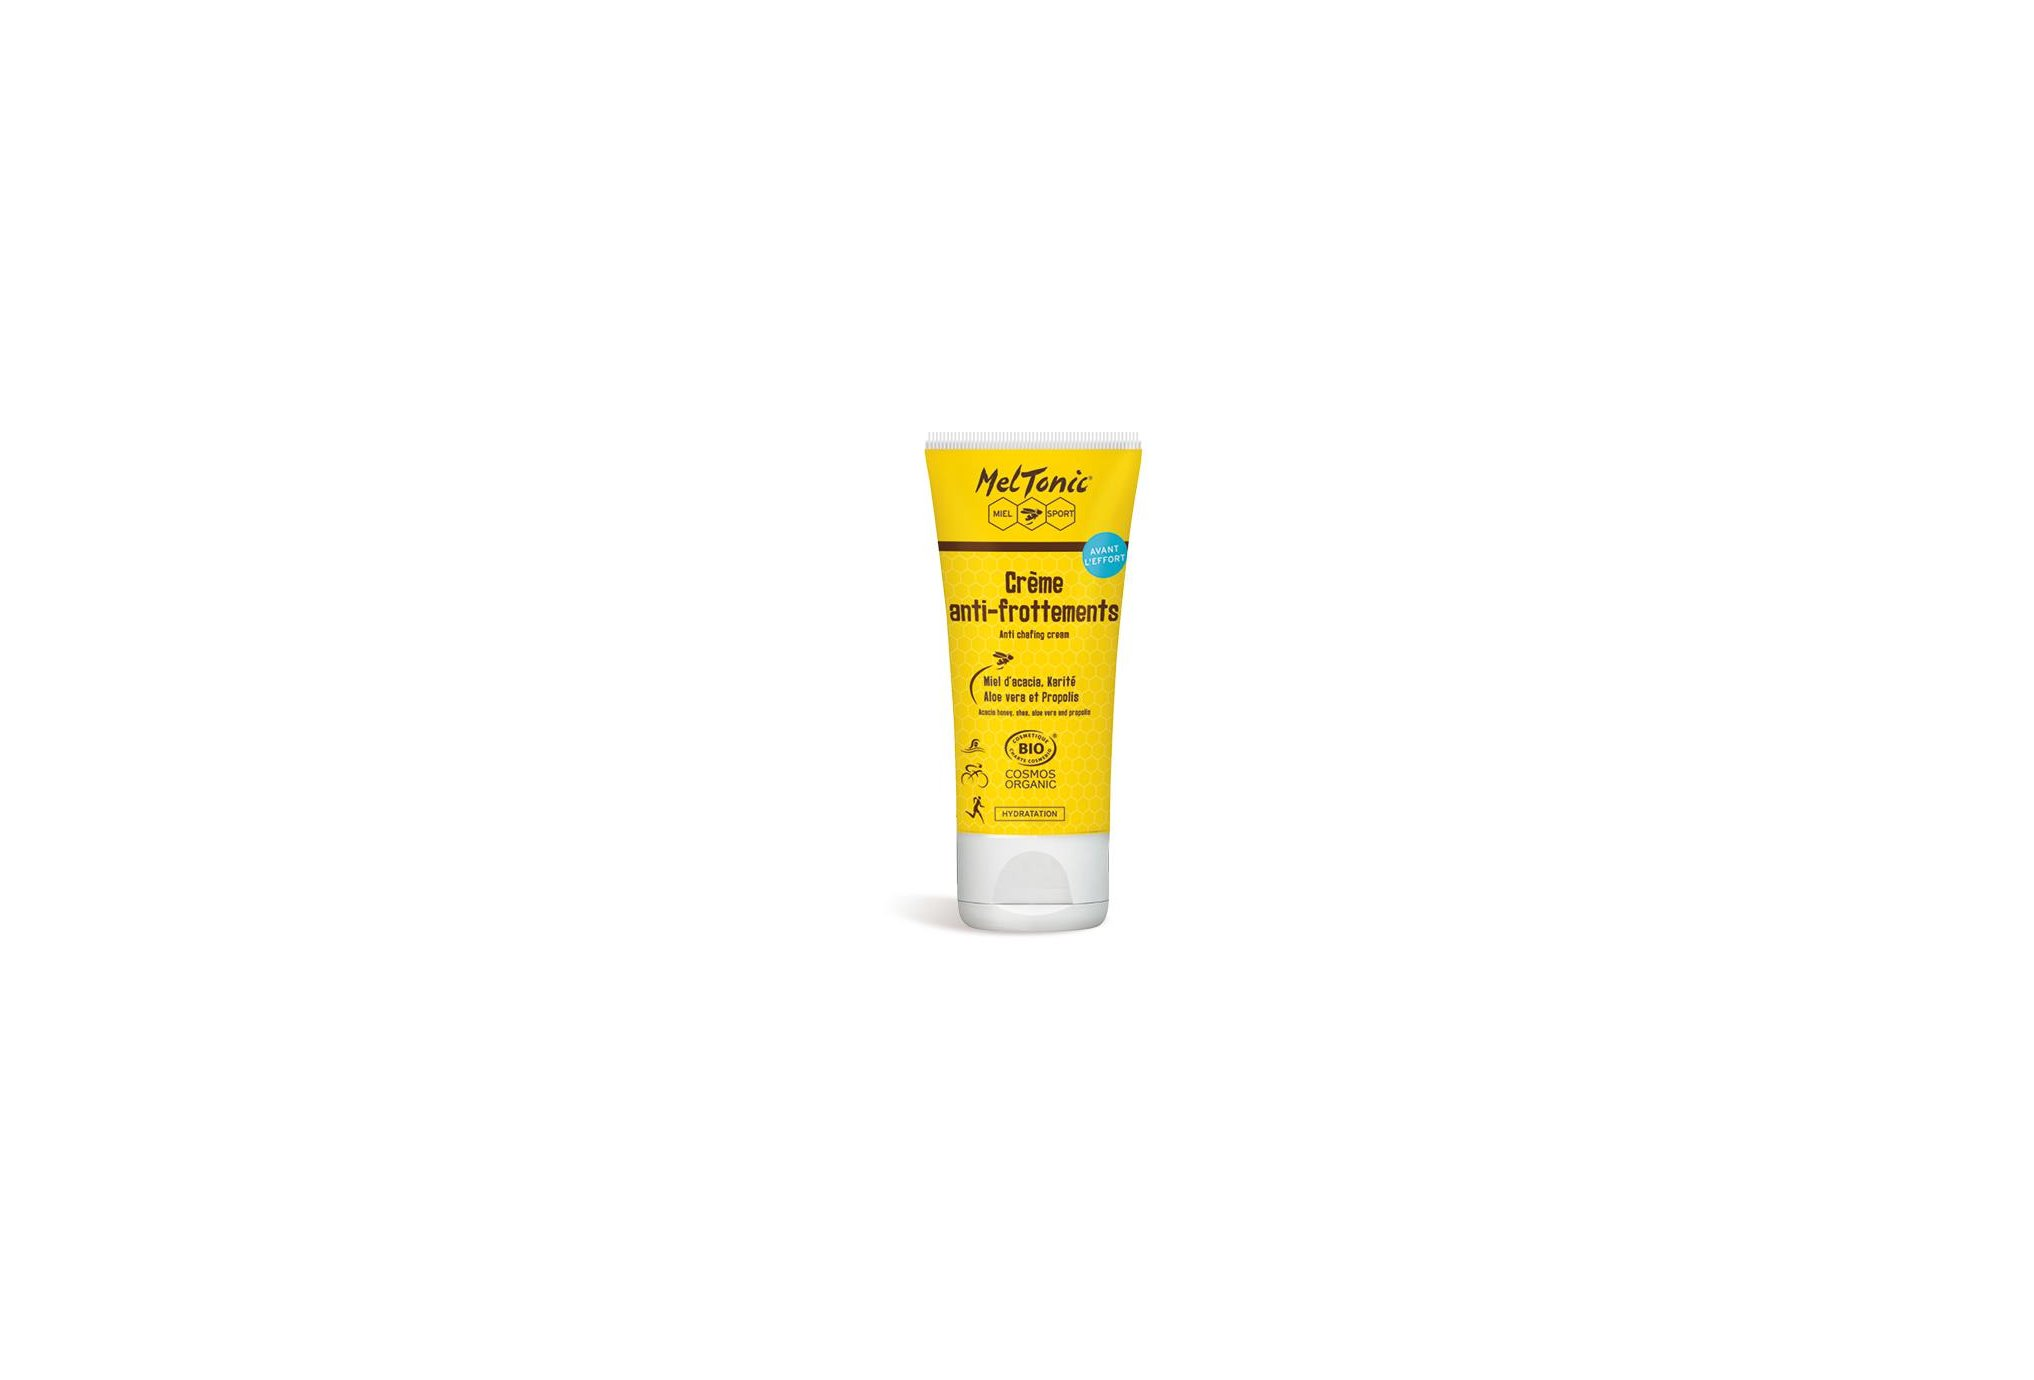 MelTonic Crème anti-frottements 75mL Bio Protection musculaire & articulaire